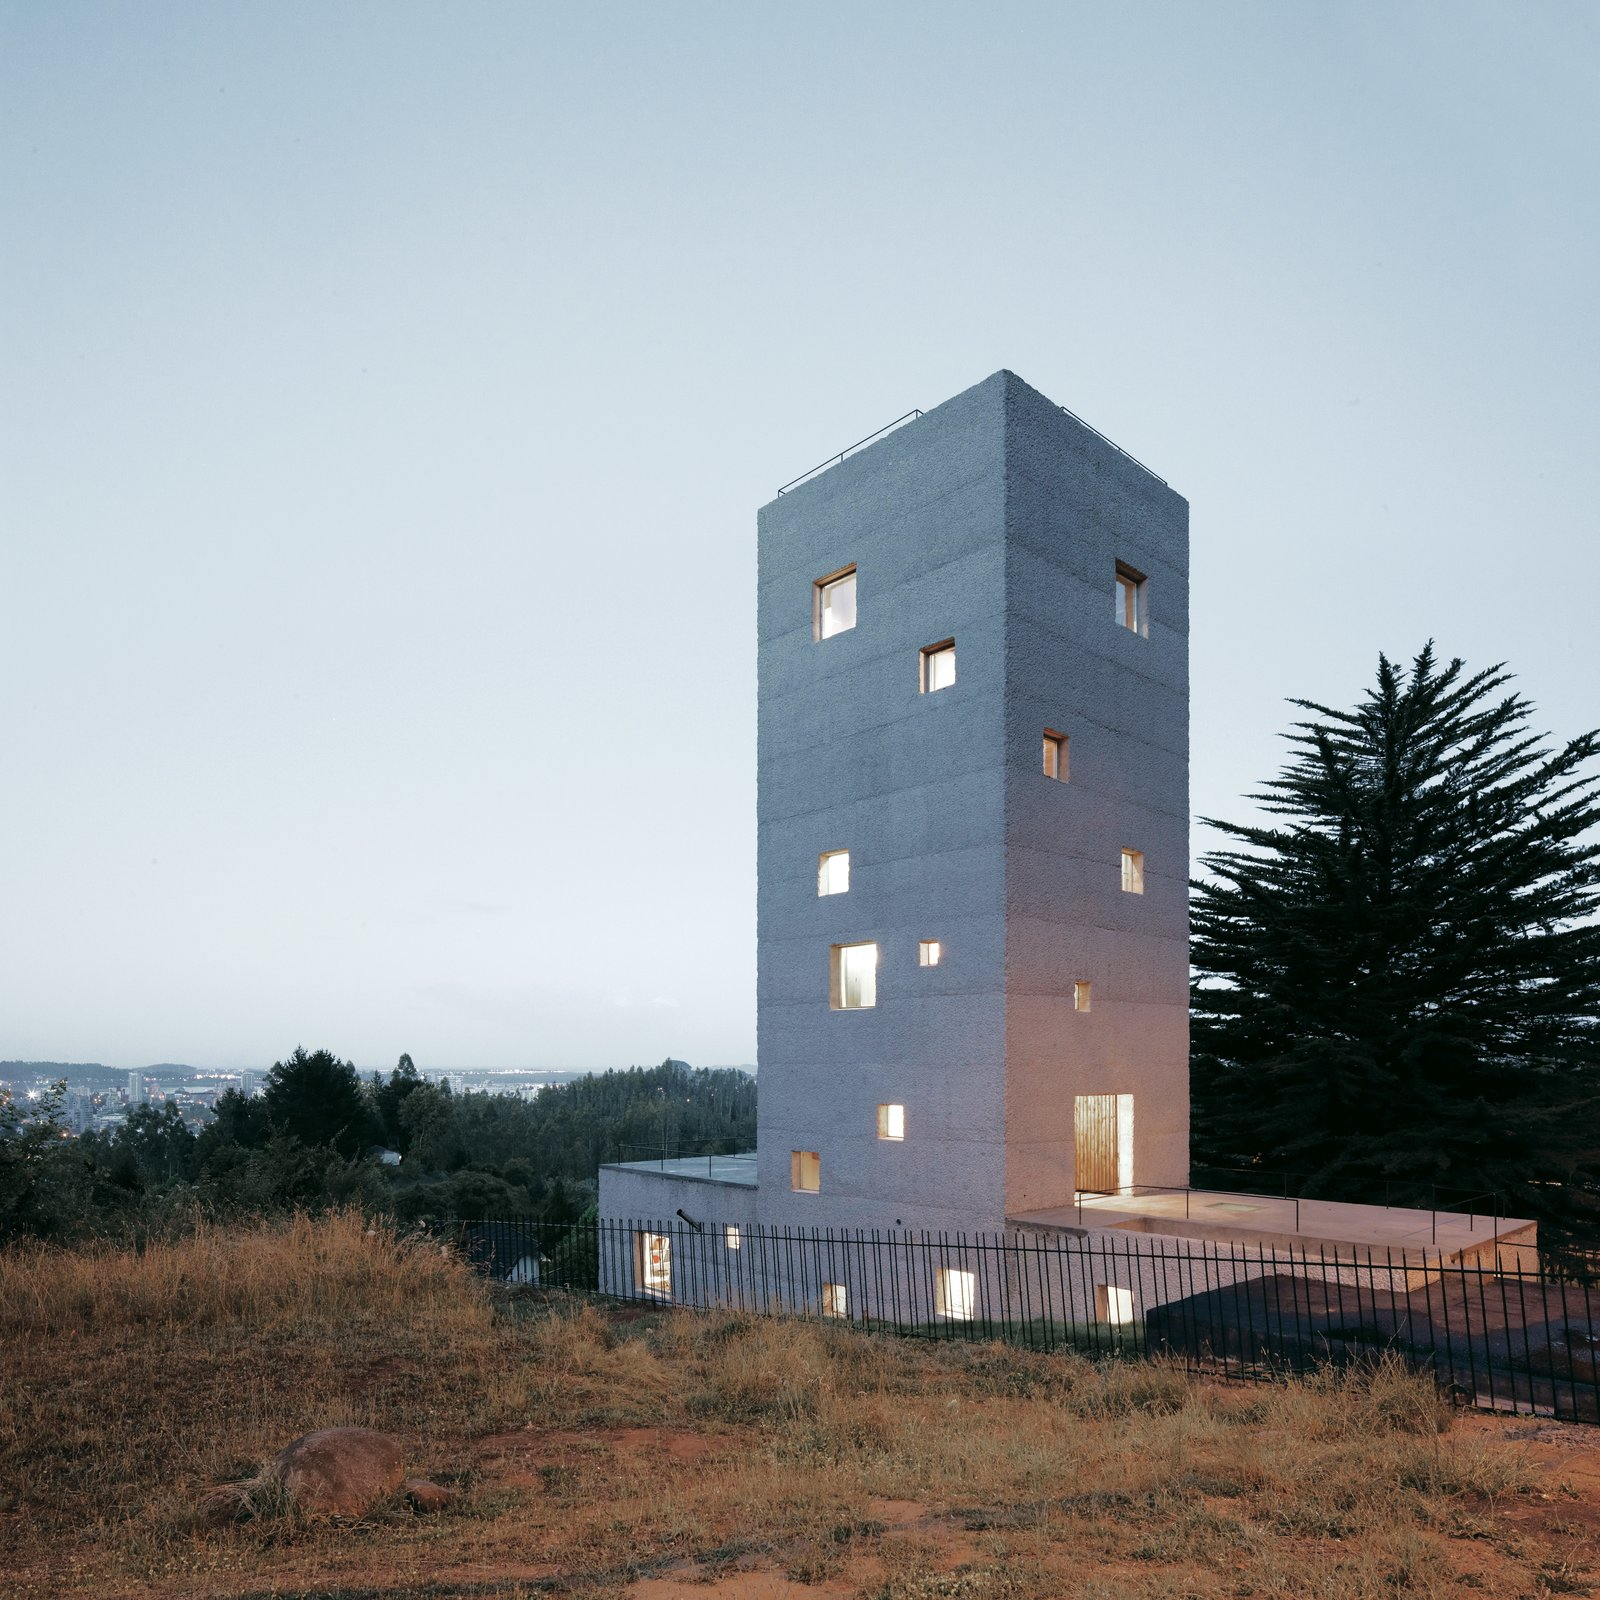 Sofia von Ellrichshausen and Mauricio Pezo's reinforced concrete home in Chile stacks rooms for working in a vertical column atop horizontally-oriented spaces for living.  Concrete from Design Tips for Privacy